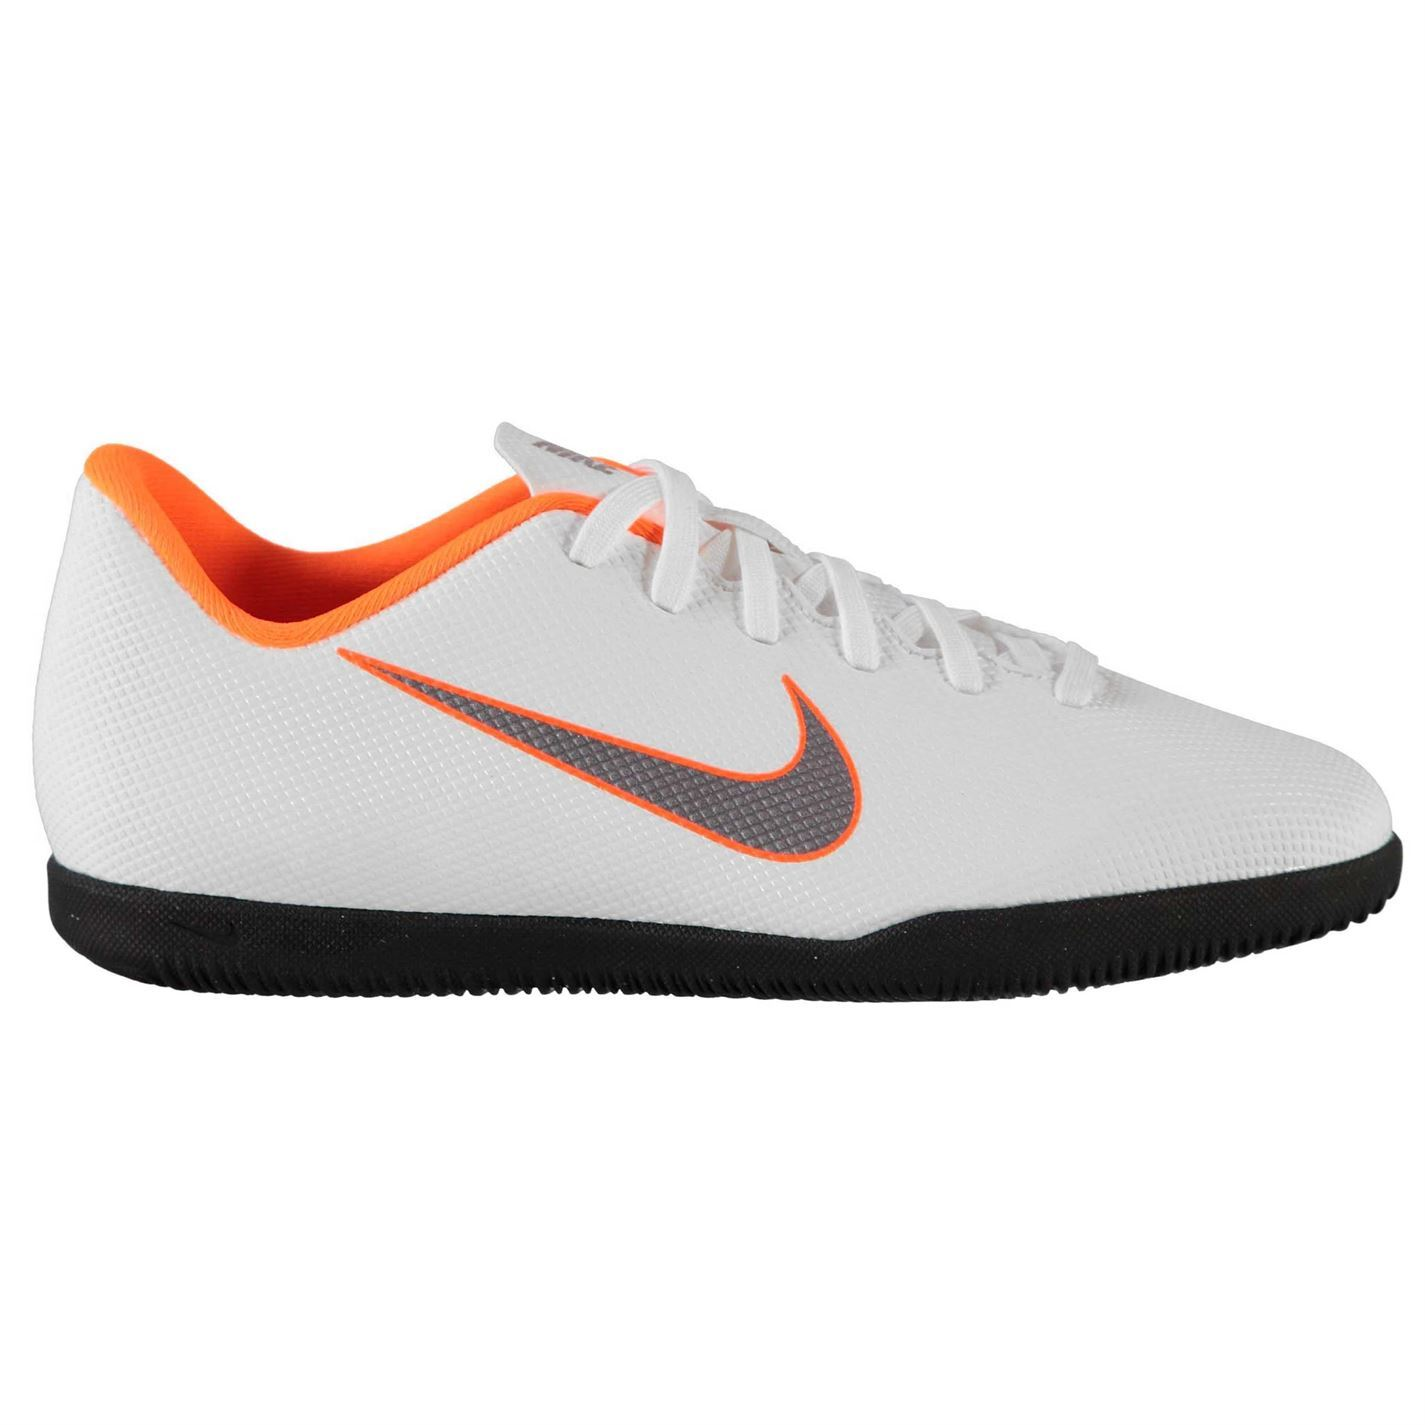 b1dd221cab11 Soccer Club Indoor Vapor Juniors Mercurial Football Trainers Nike qE0tpwq